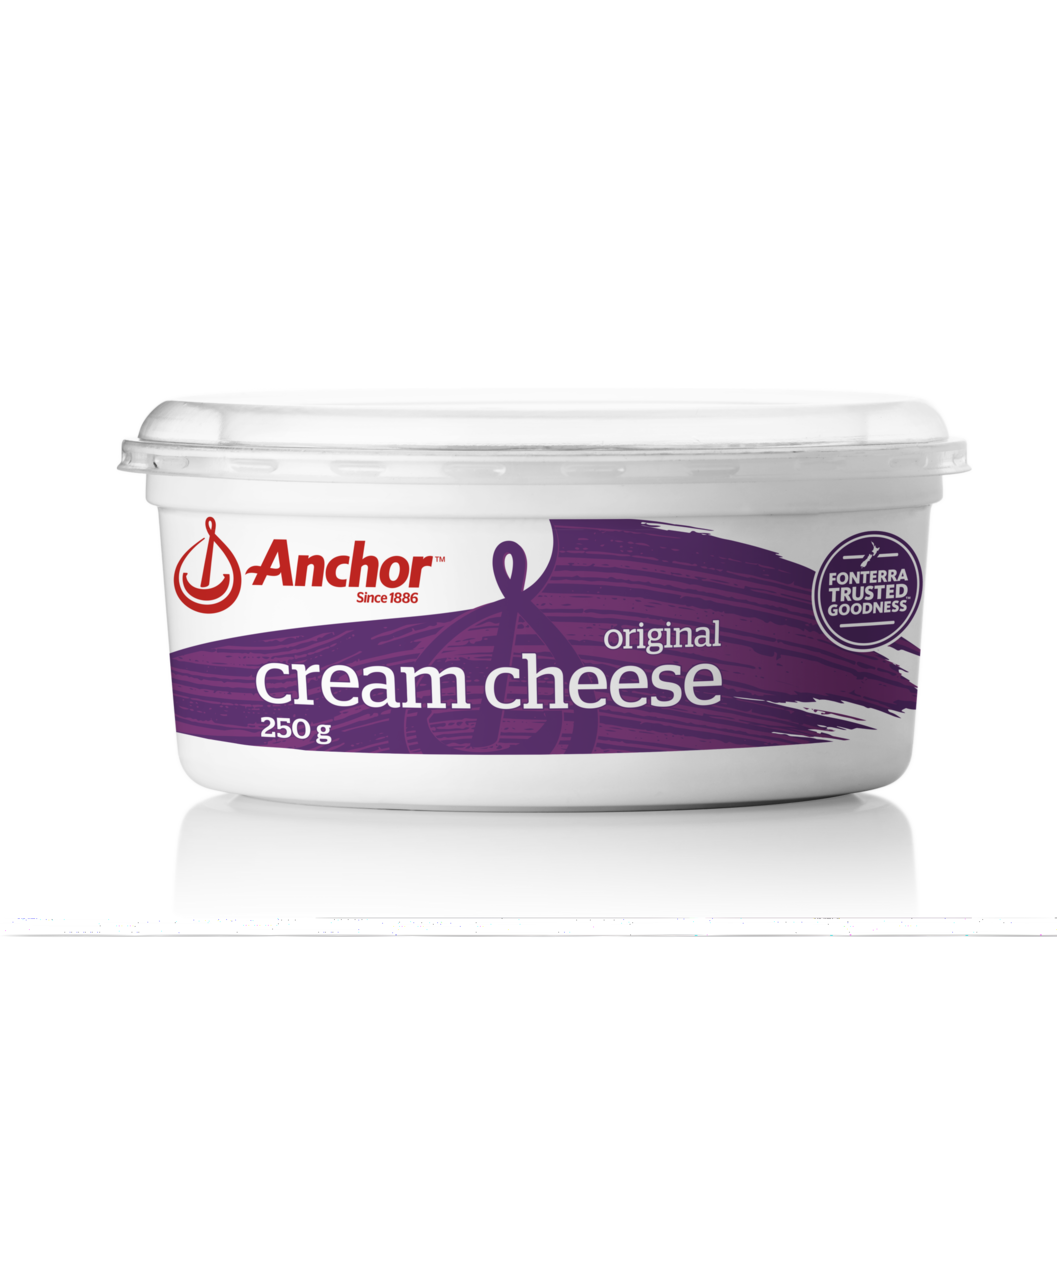 Anchor Cream Cheese Original 250g tub